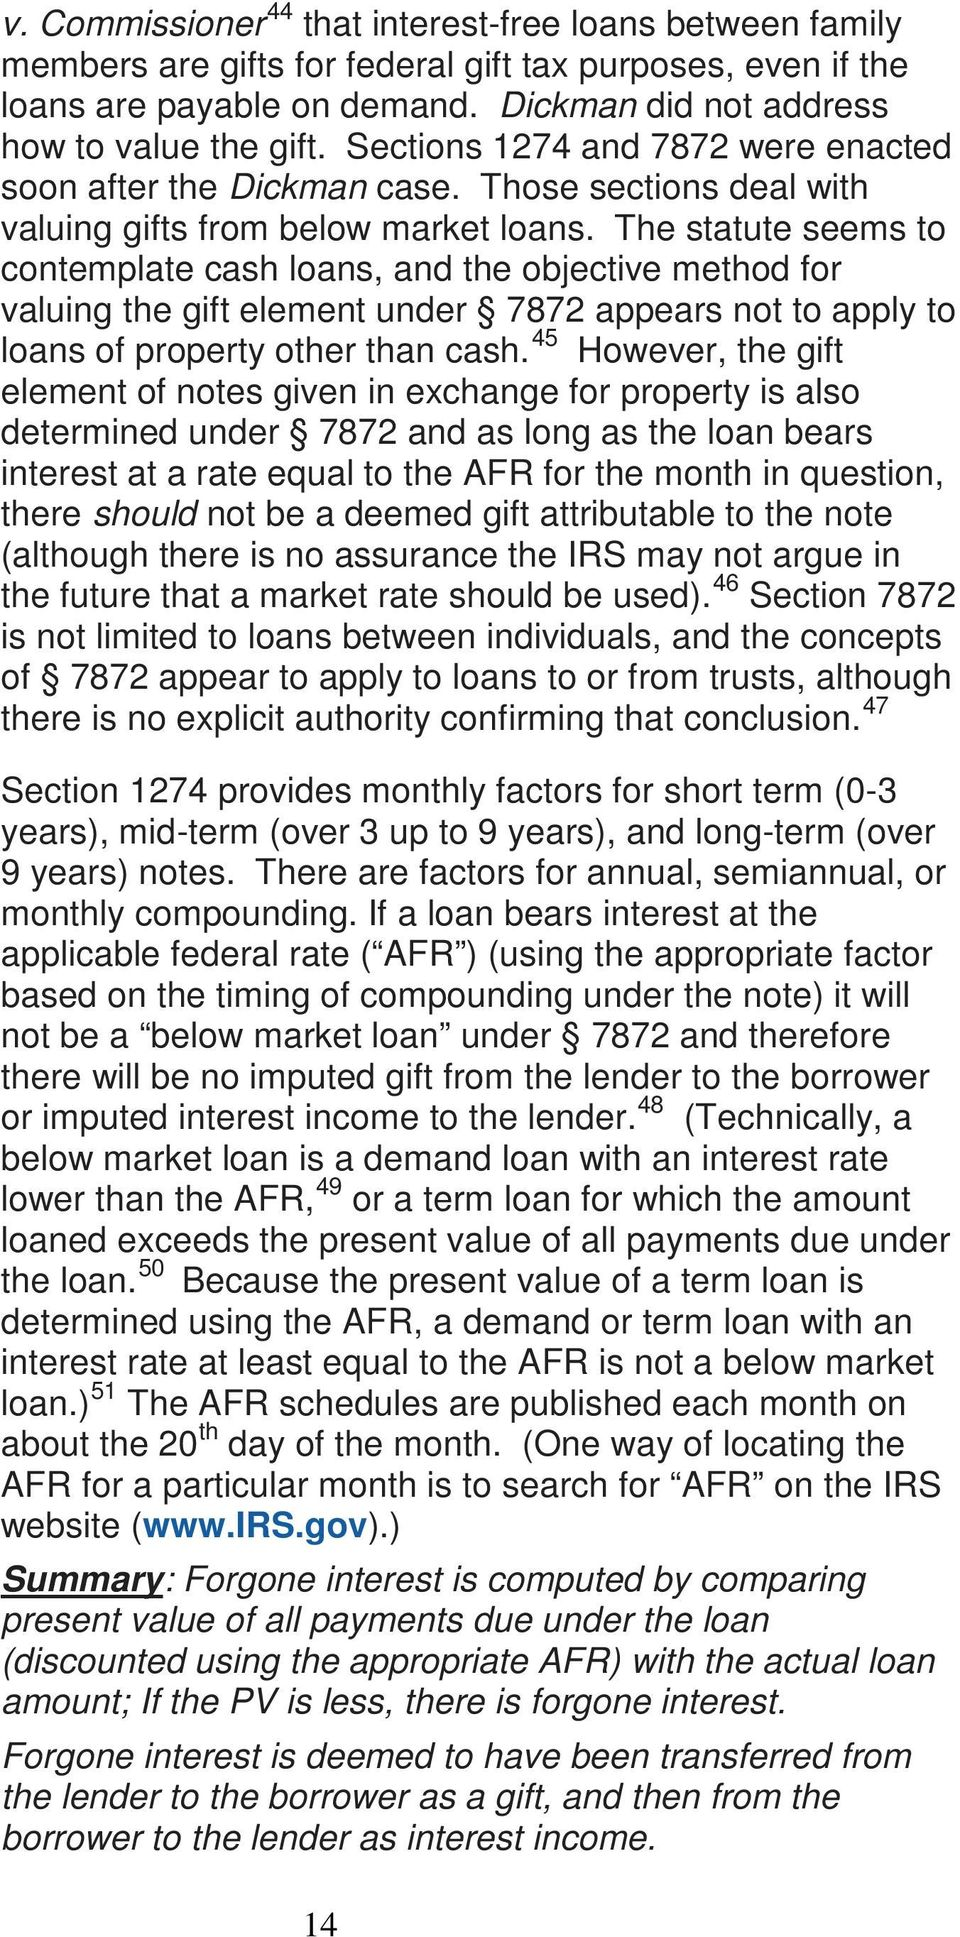 The statute seems to contemplate cash loans, and the objective method for valuing the gift element under 7872 appears not to apply to loans of property other than cash.